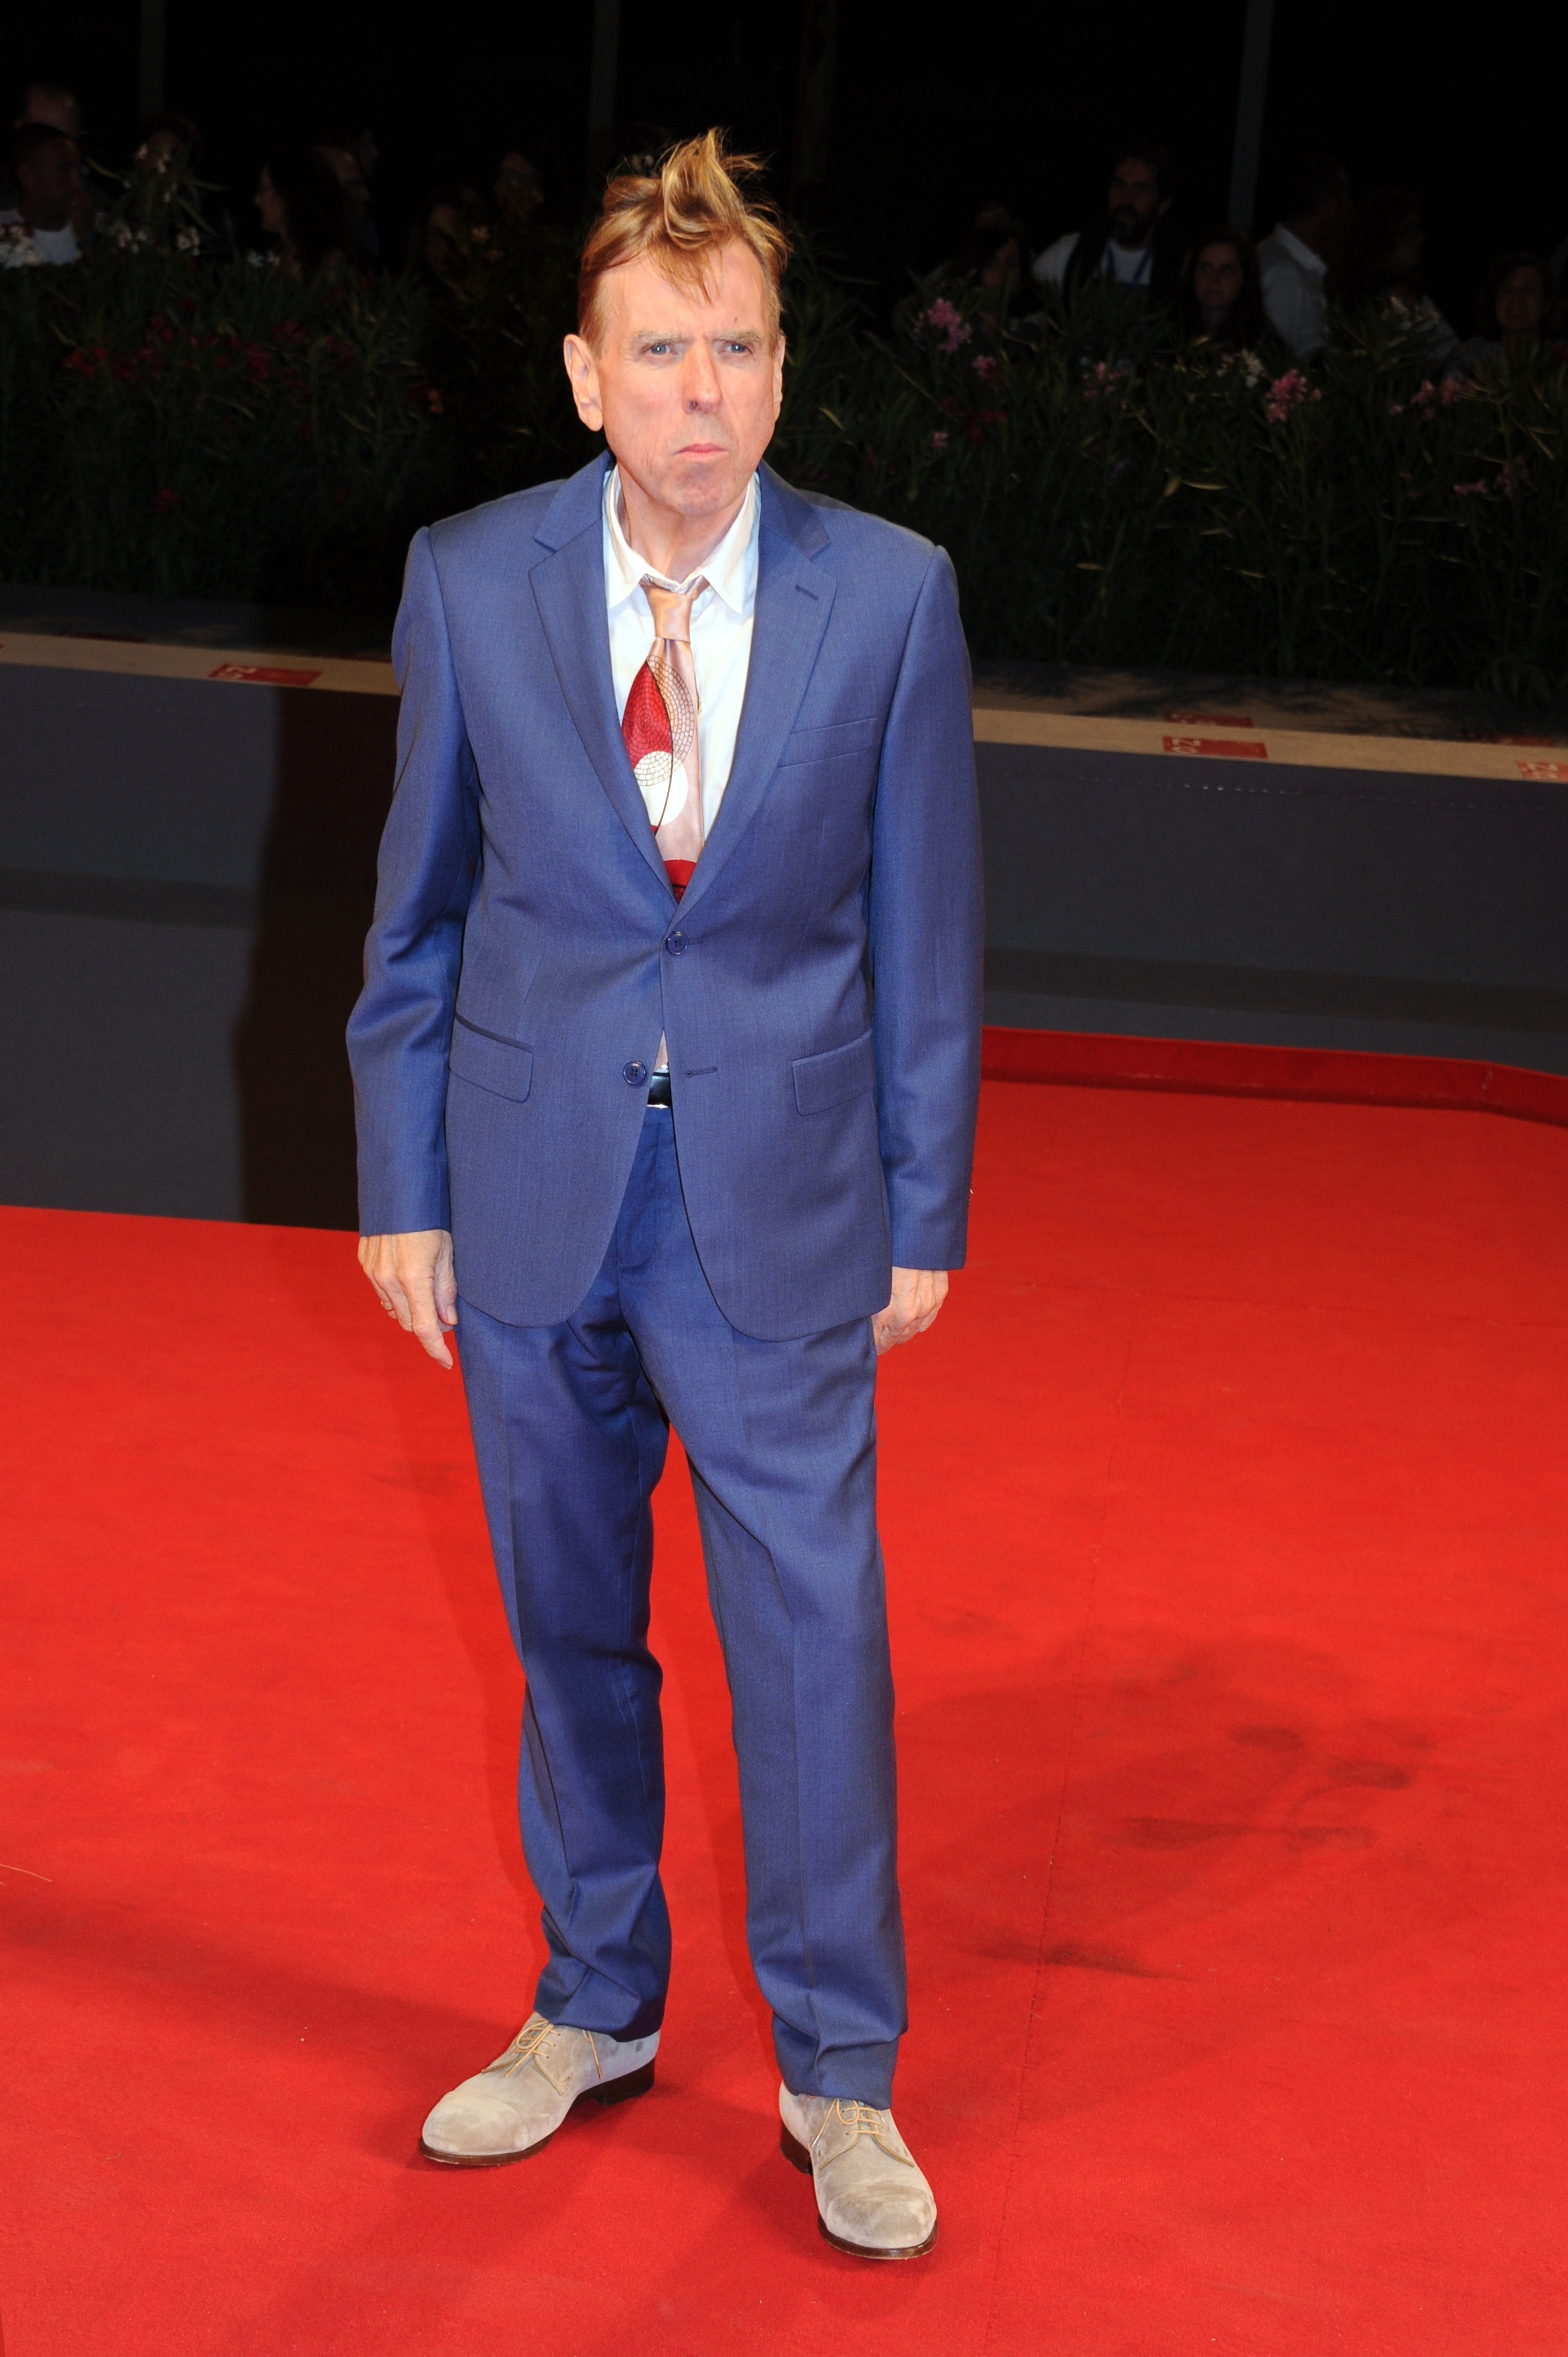 Picture Shows: Timothy Spall September 07, 2016 Celebrities attend 'The Journey' film premiere at the 73rd Venice Film Festival in Venice, Italy. Non Exclusive UK RIGHTS ONLY Pictures by : FameFlynet UK © 2016 Tel : +44 (0)20 3551 5049 Email : info@fameflynet.uk.com